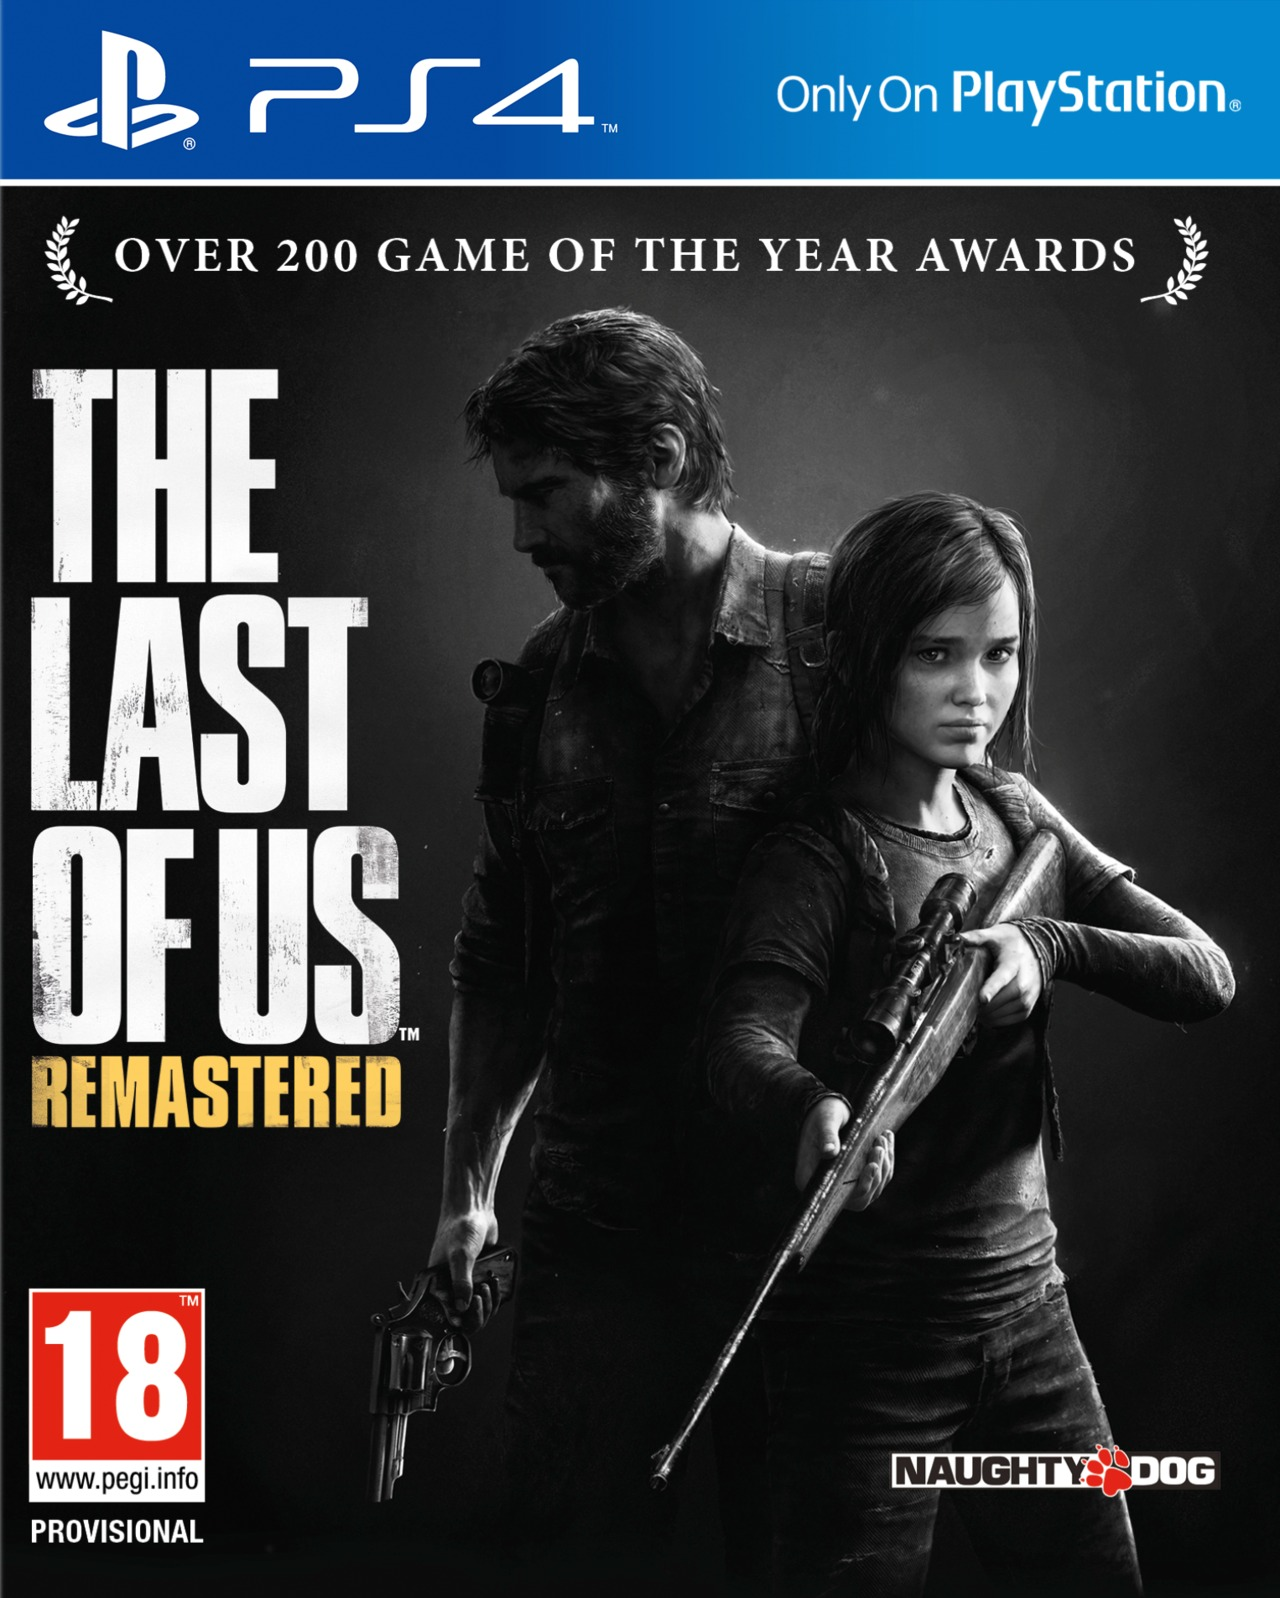 http://image.jeuxvideo.com/images/jaquettes/00052332/jaquette-the-last-of-us-remastered-playstation-4-ps4-cover-avant-g-1397063678.jpg